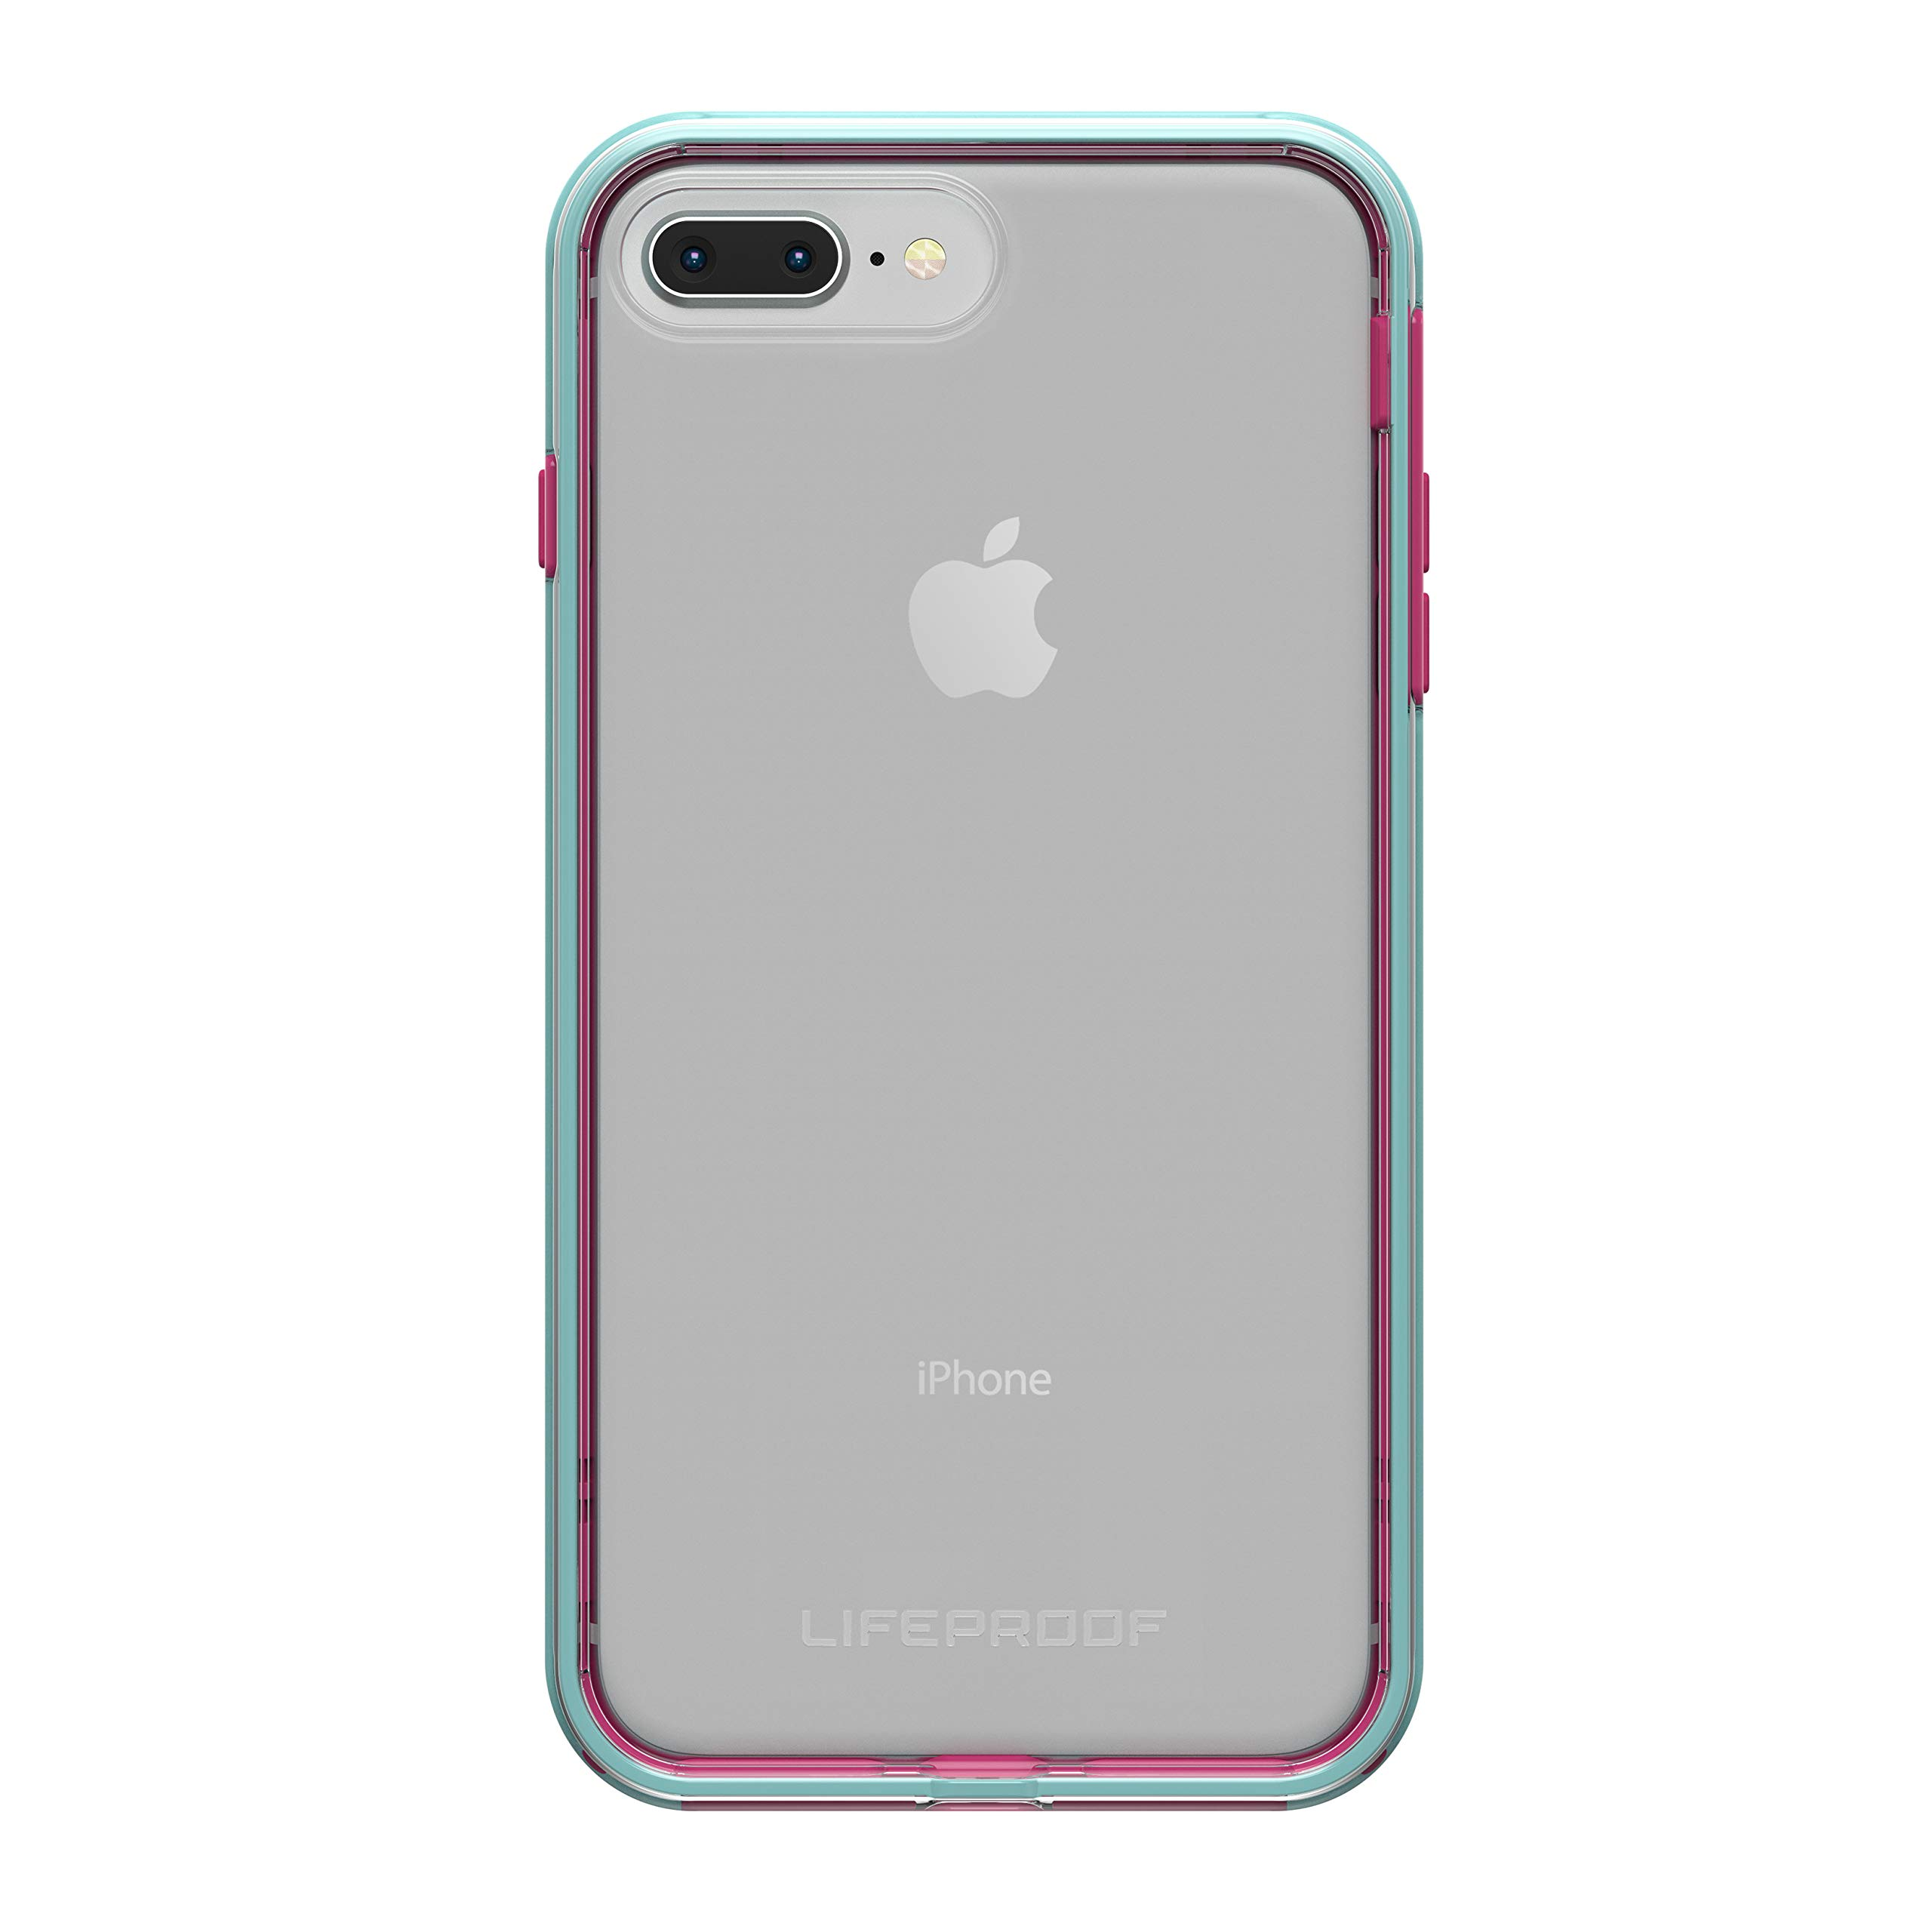 Lifeproof SLAM Series Case for iPhone 8 Plus & 7 Plus (ONLY) - Retail Packaging - Aloha Sunset (Clear/Blue Tint/Process Magenta) by LifeProof (Image #2)